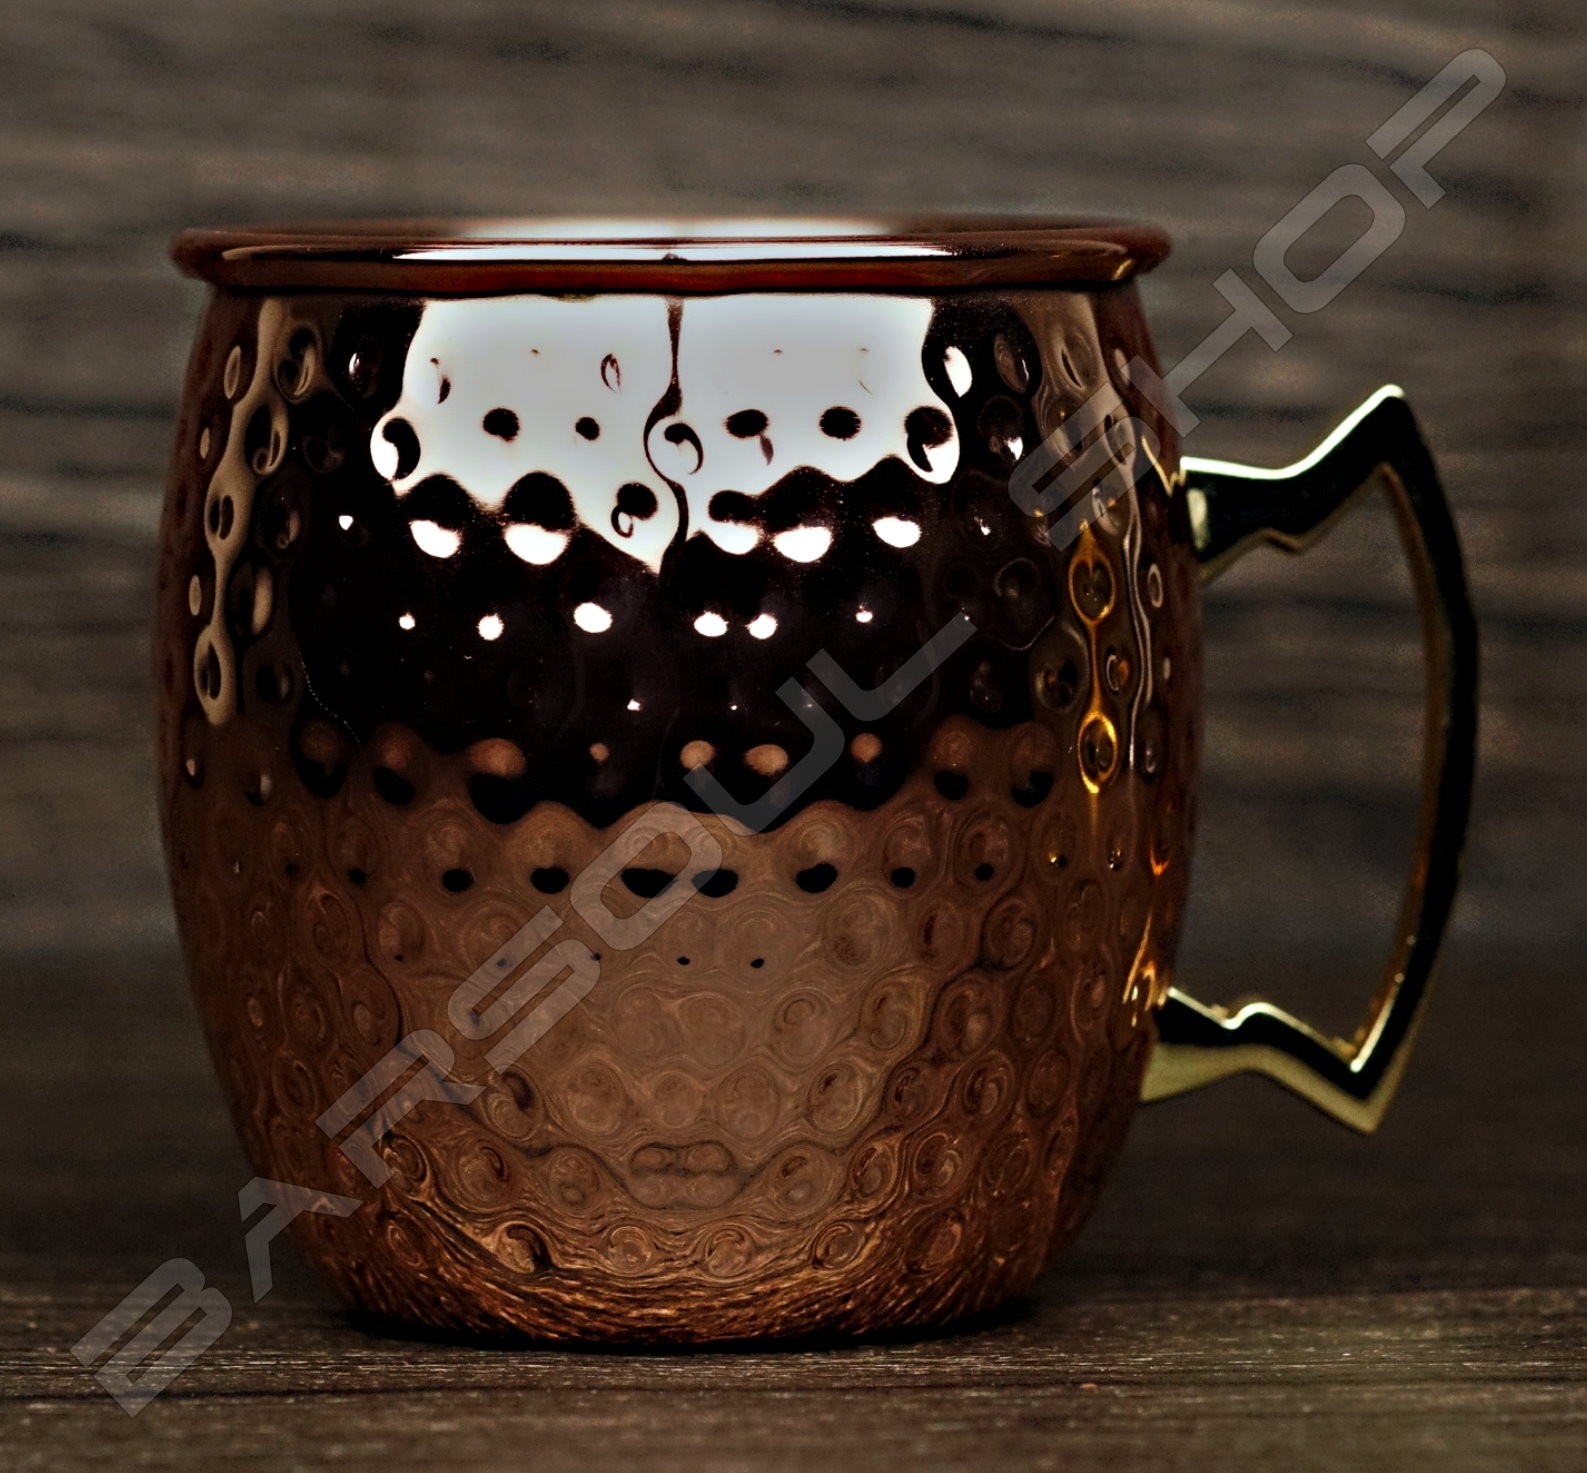 驢子鍍銅杯(霧面)500ml Donkey copper cup(matte)